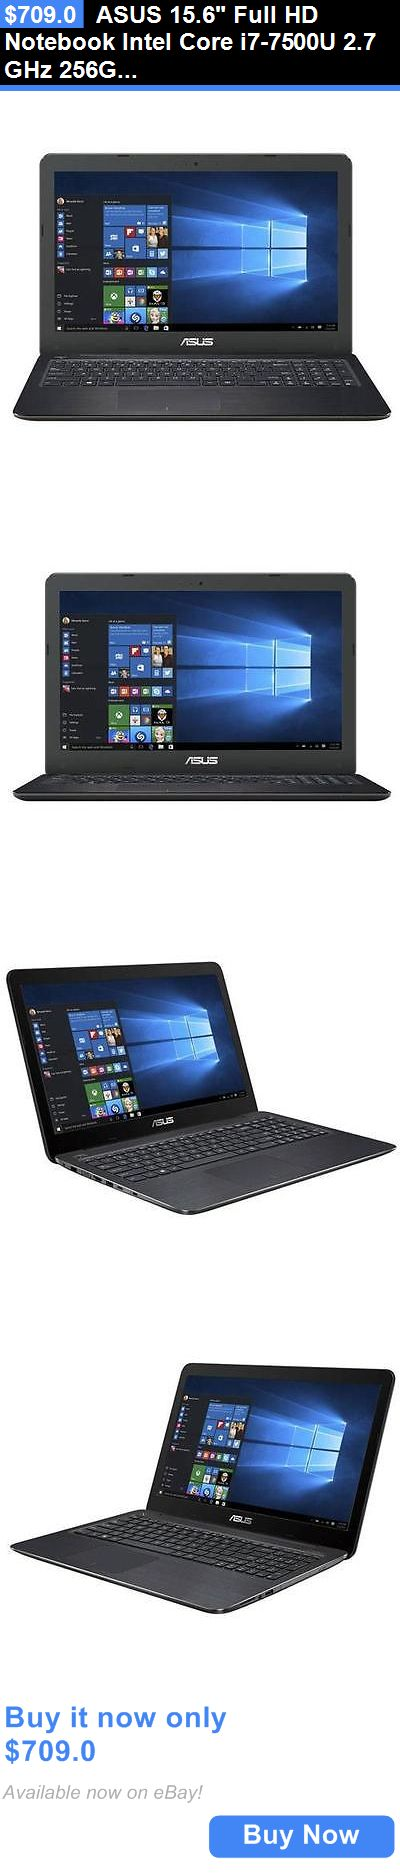 general for sale: Asus 15.6 Full Hd Notebook Intel Core I7-7500U 2.7 Ghz 256Gb Ssd 8Gb Windows 10 BUY IT NOW ONLY: $709.0